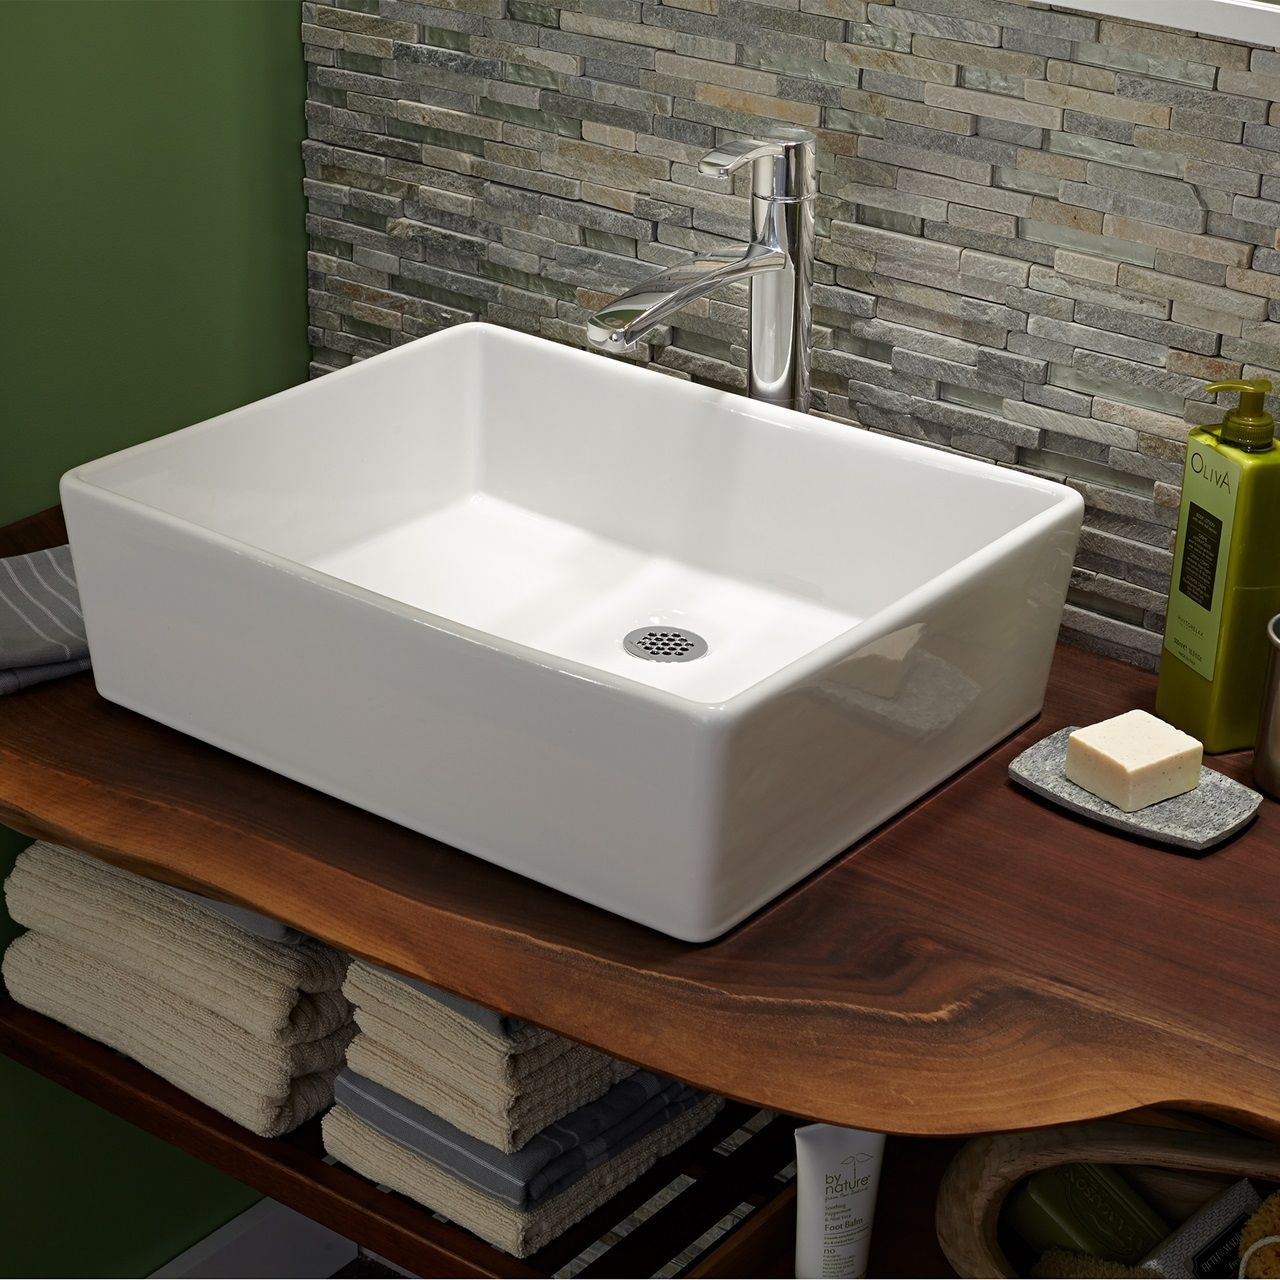 Bathroom Sinks Loft Above Counter Sink Less Faucet Hole White